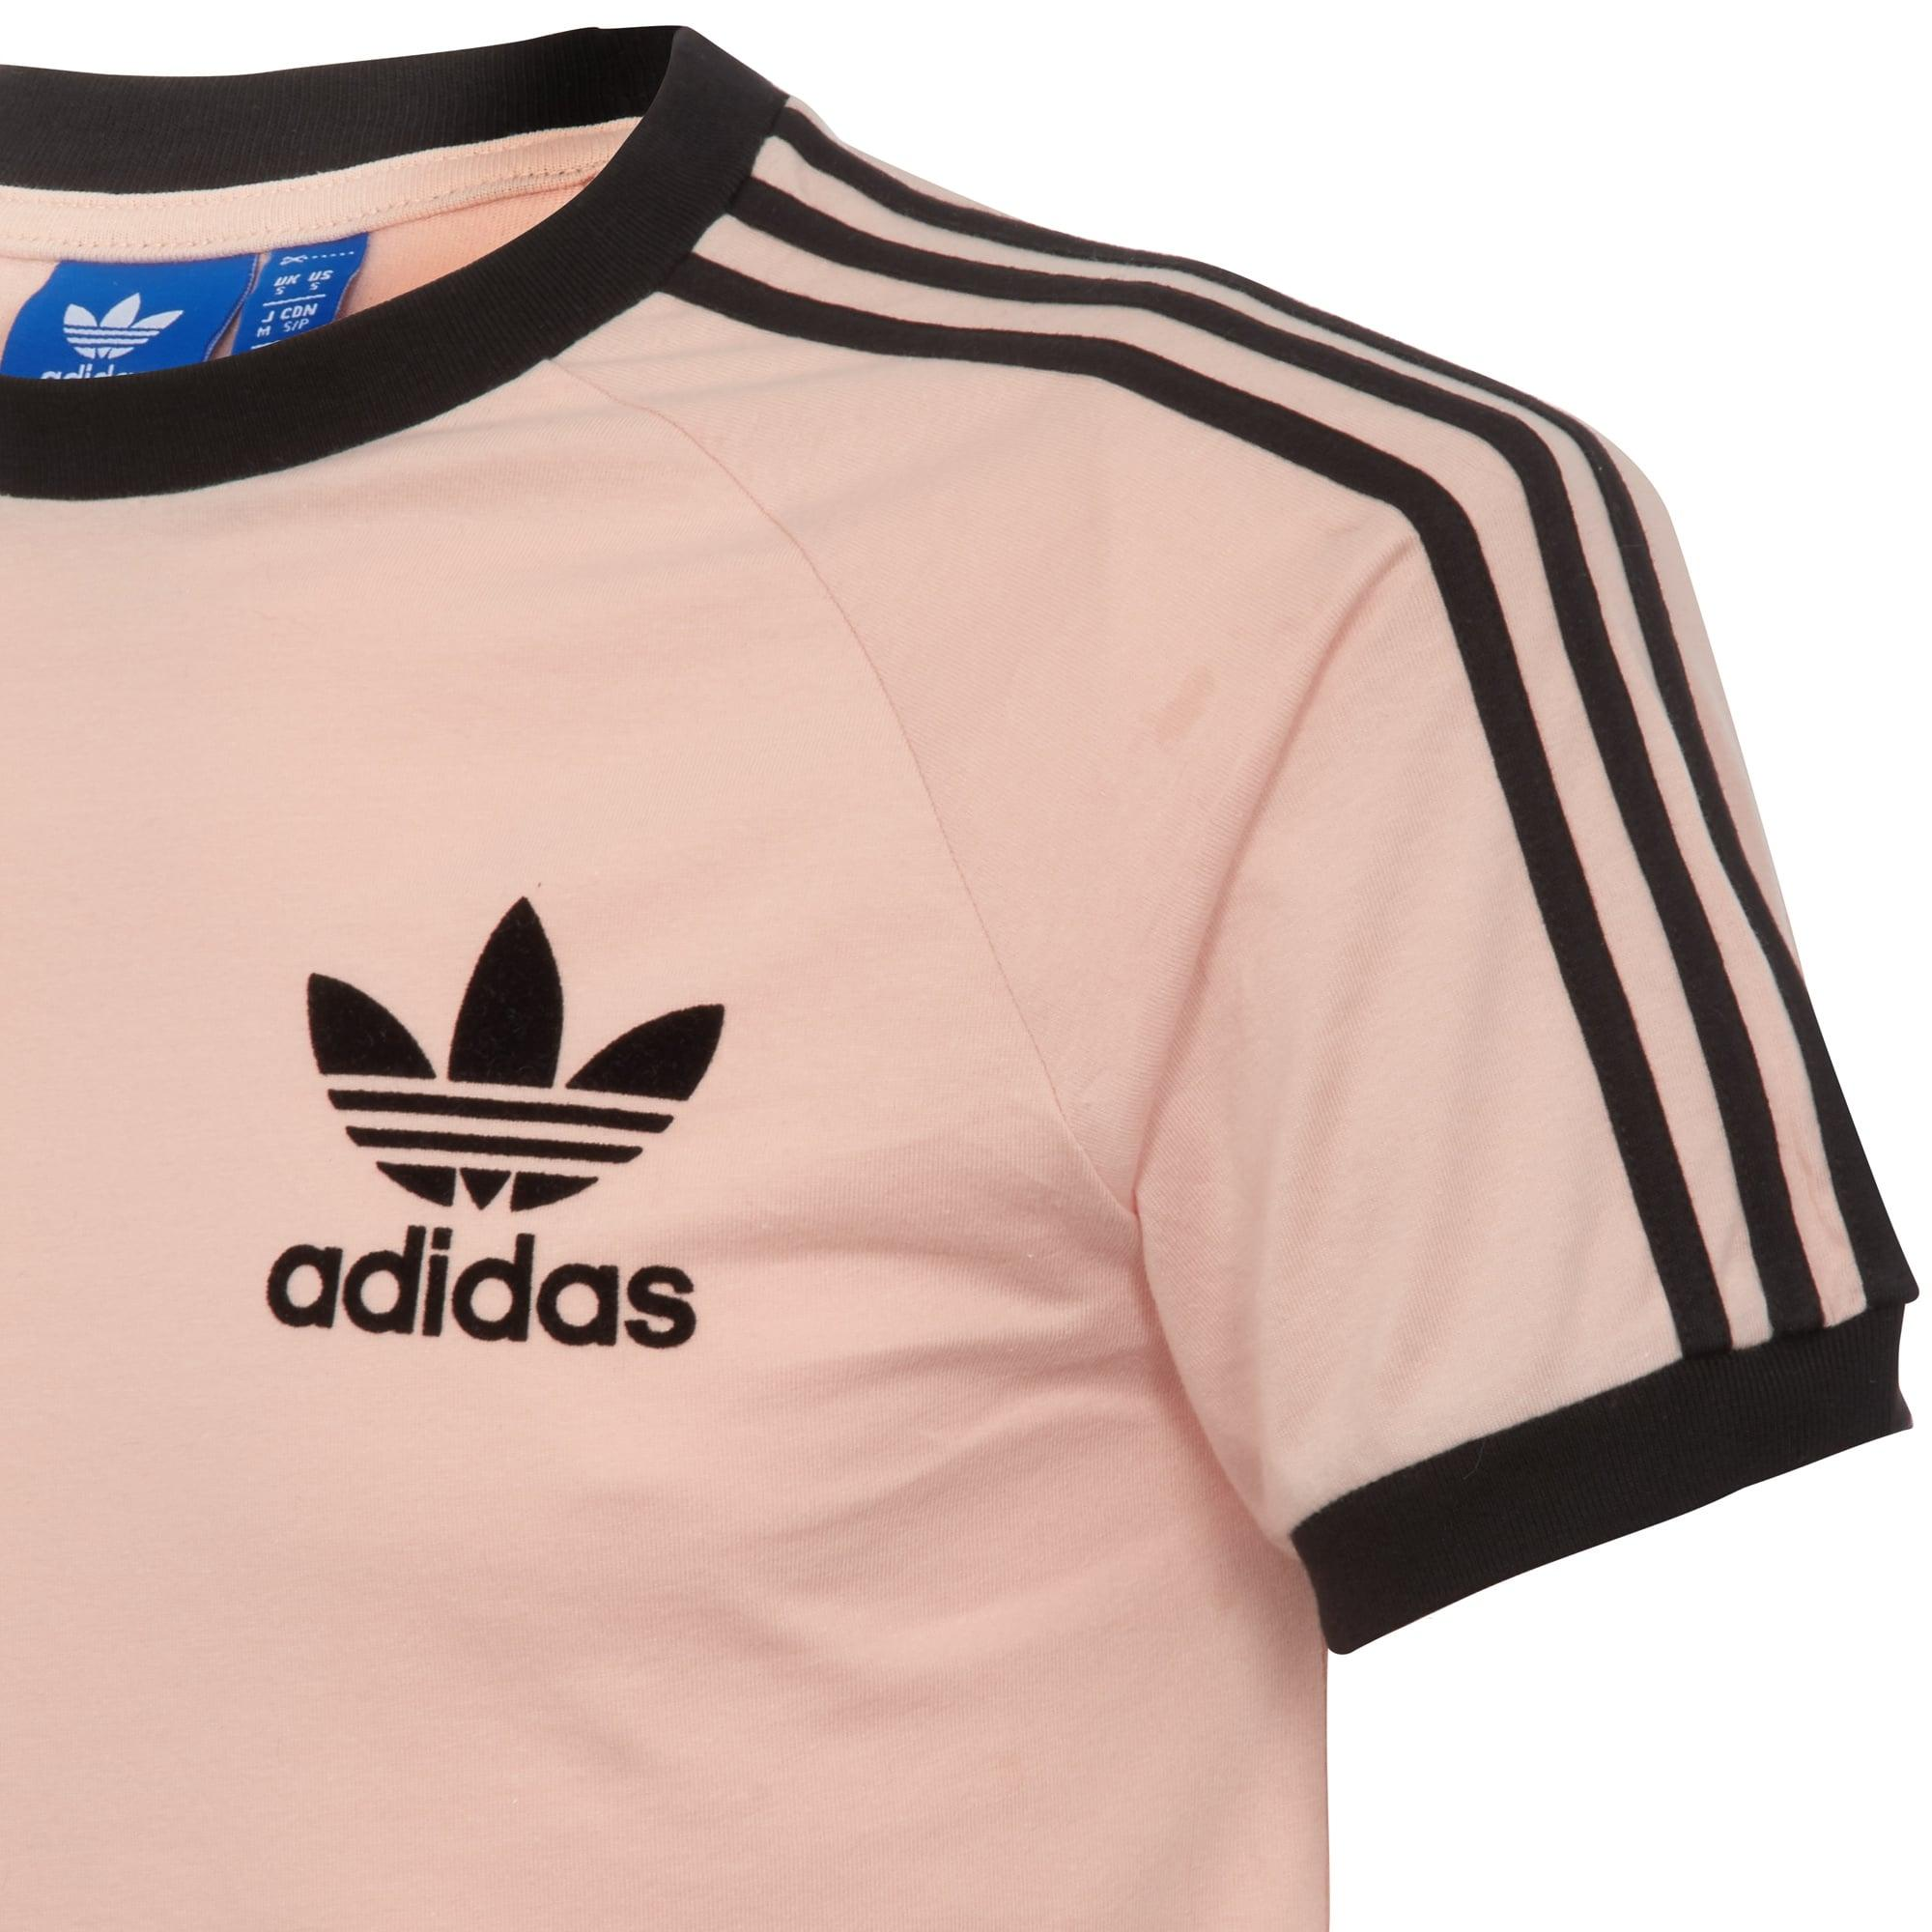 picked up sale online super quality Adidas Originals California T Shirt Vapour Pink   Toffee Art